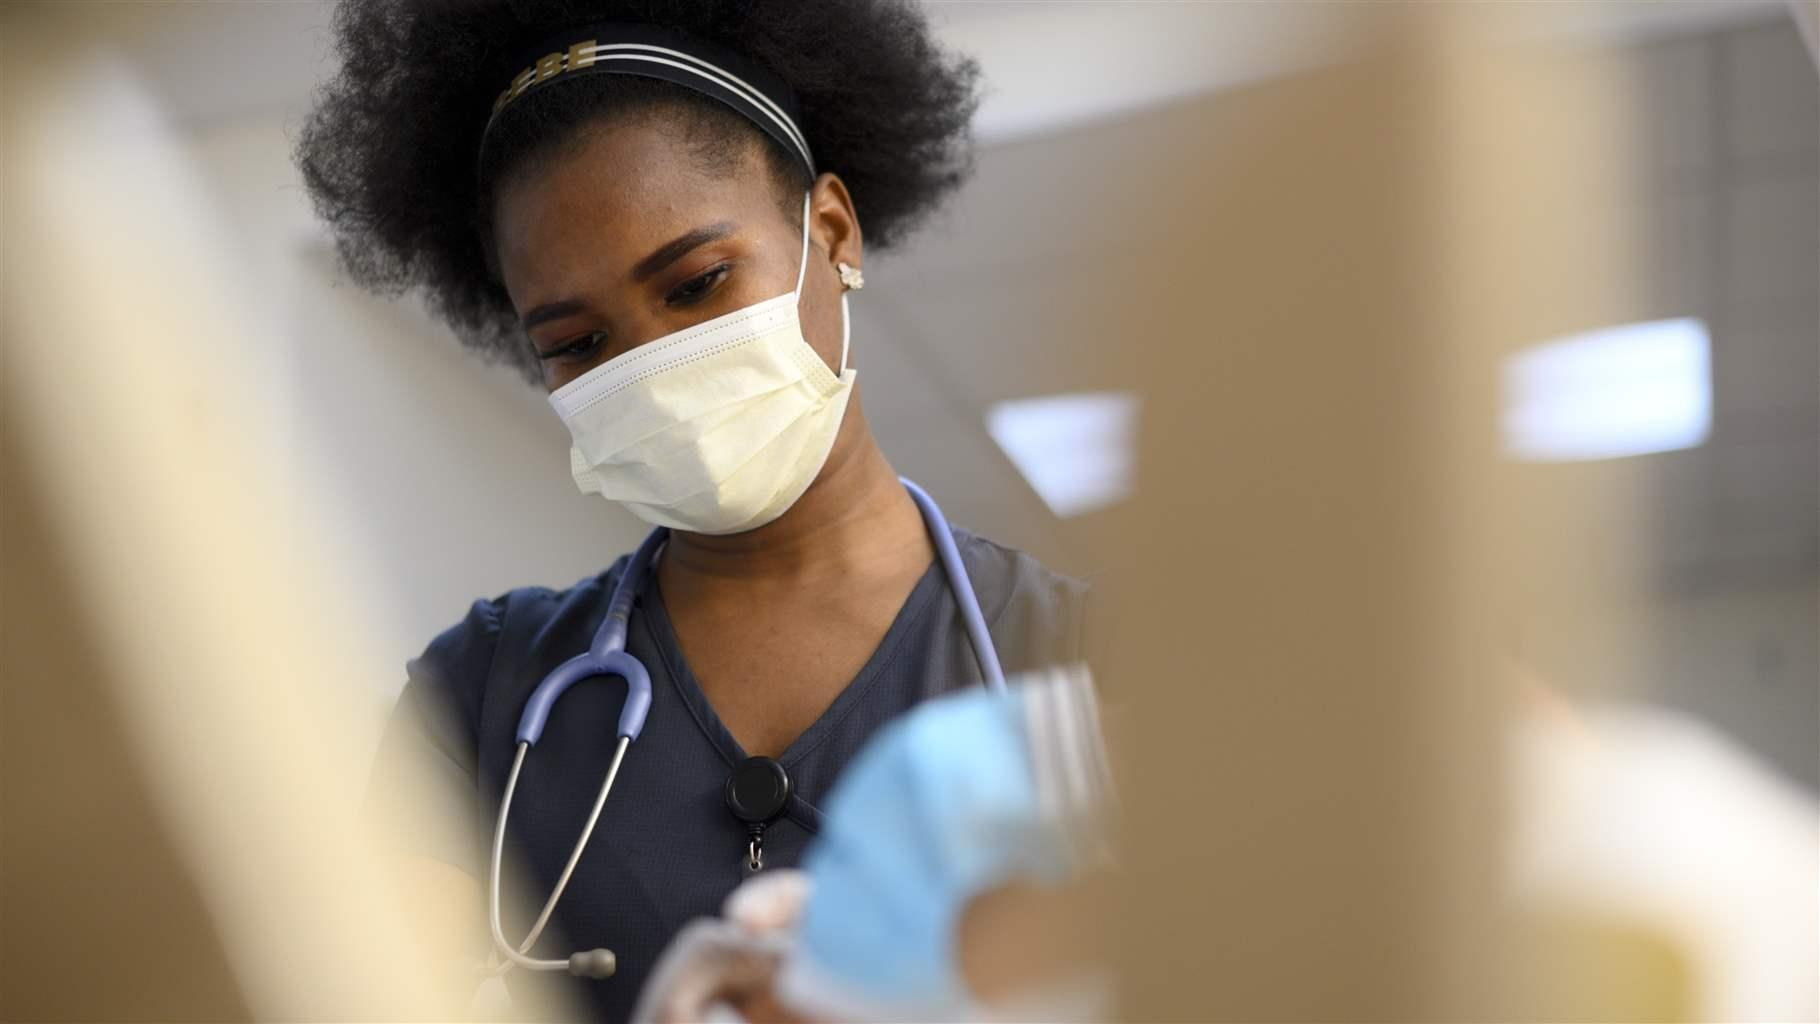 Nurse with facemask